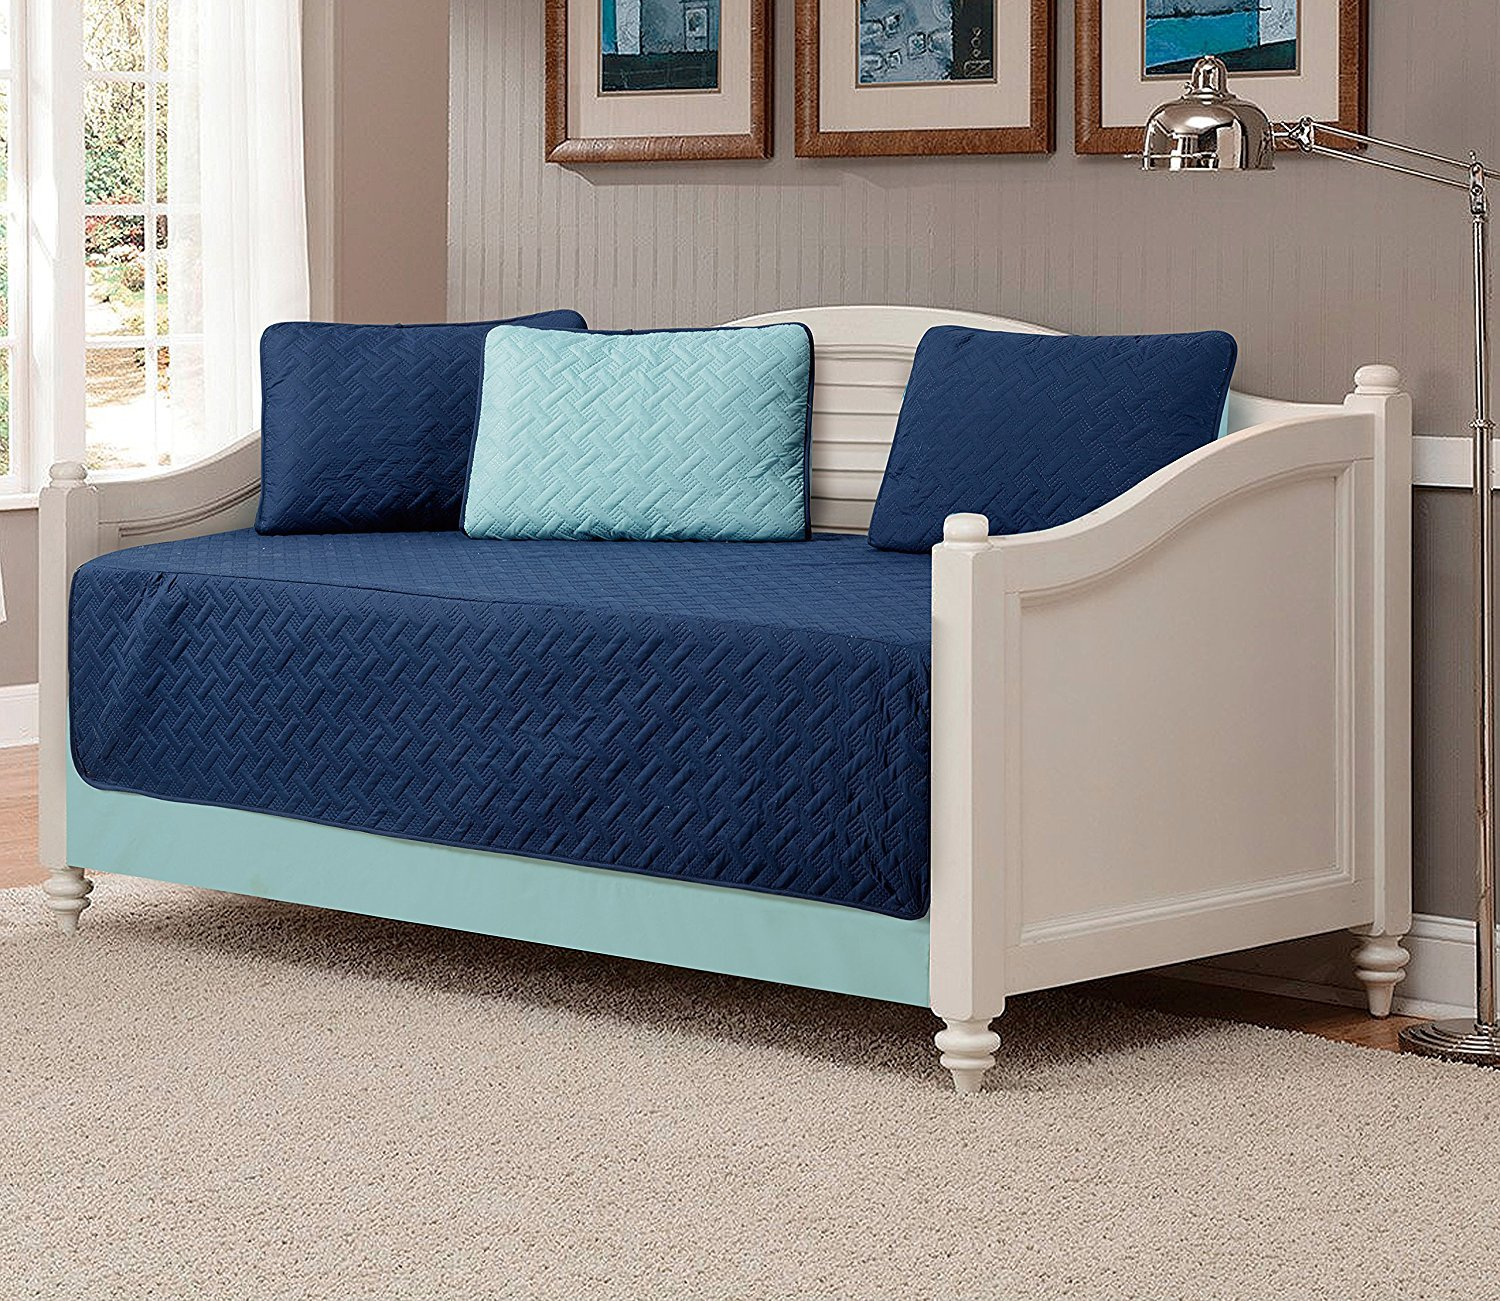 Fancy Collection 5pc DayBed Quilted Bedspread Coverlet Set Embossed Solid Navy Blue/Light Blue Reversible New